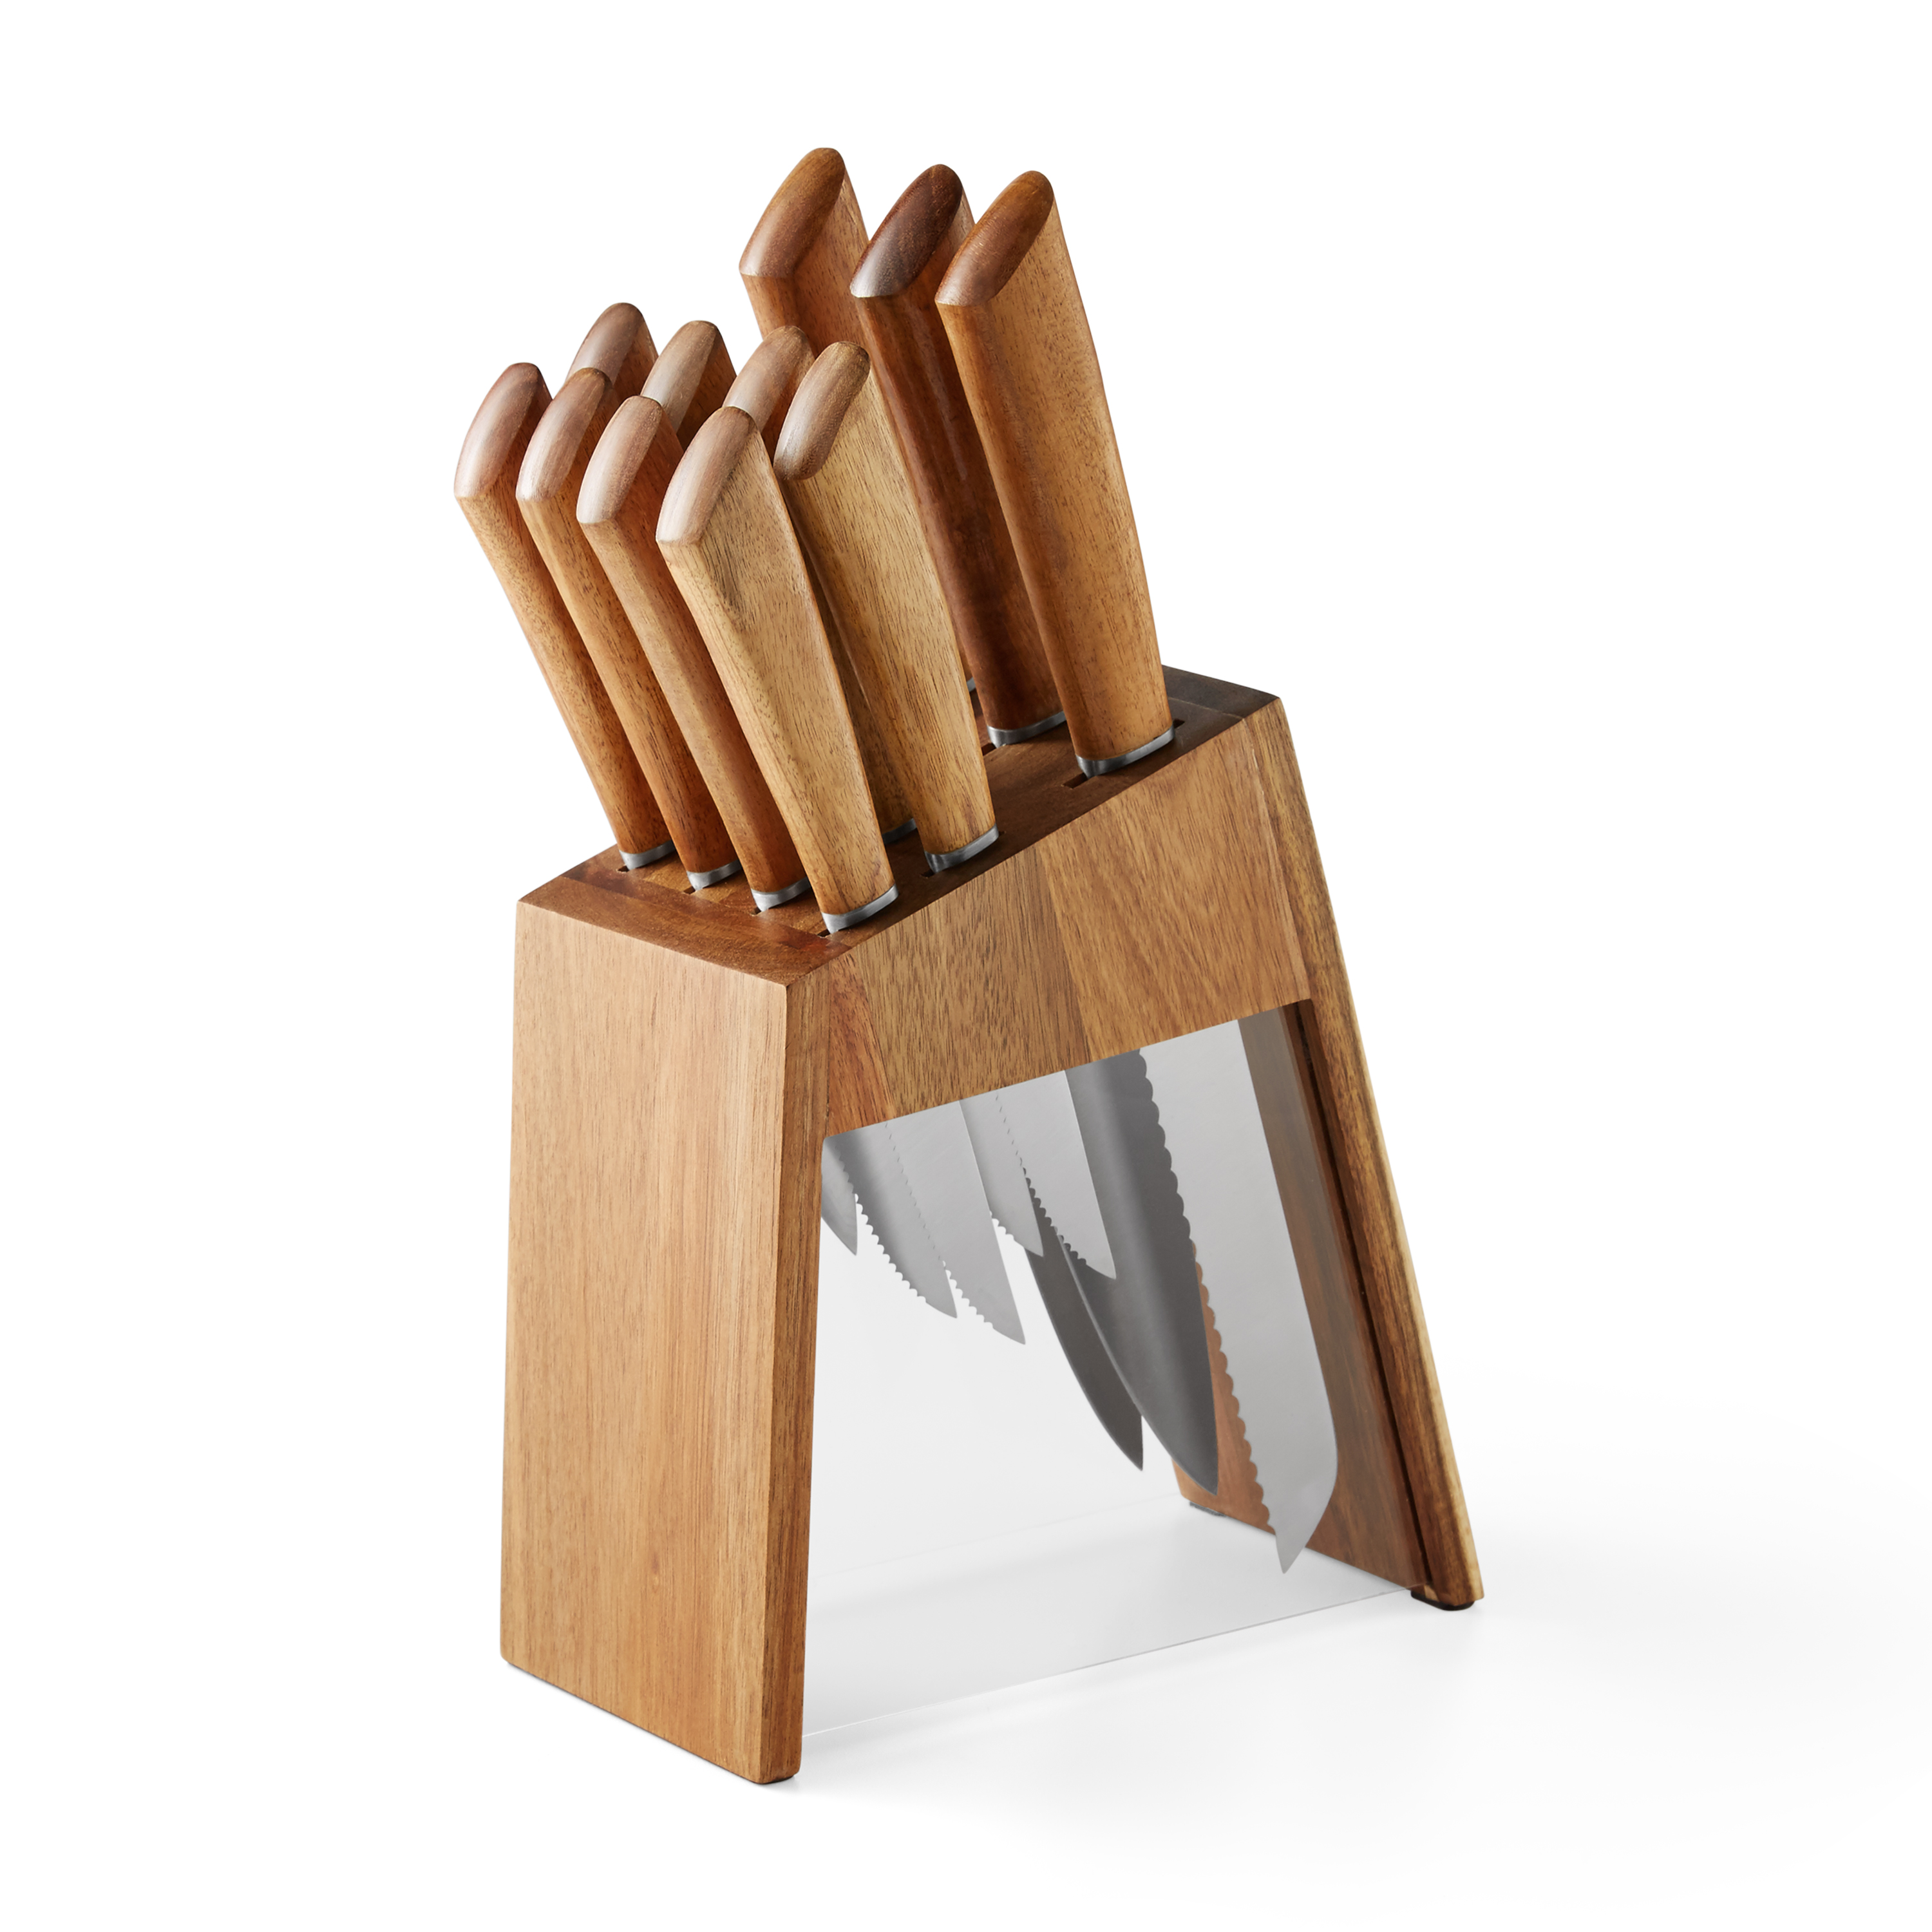 12-Piece Acacia Handle Knife Set with Acacia Wood and Acrylic Block